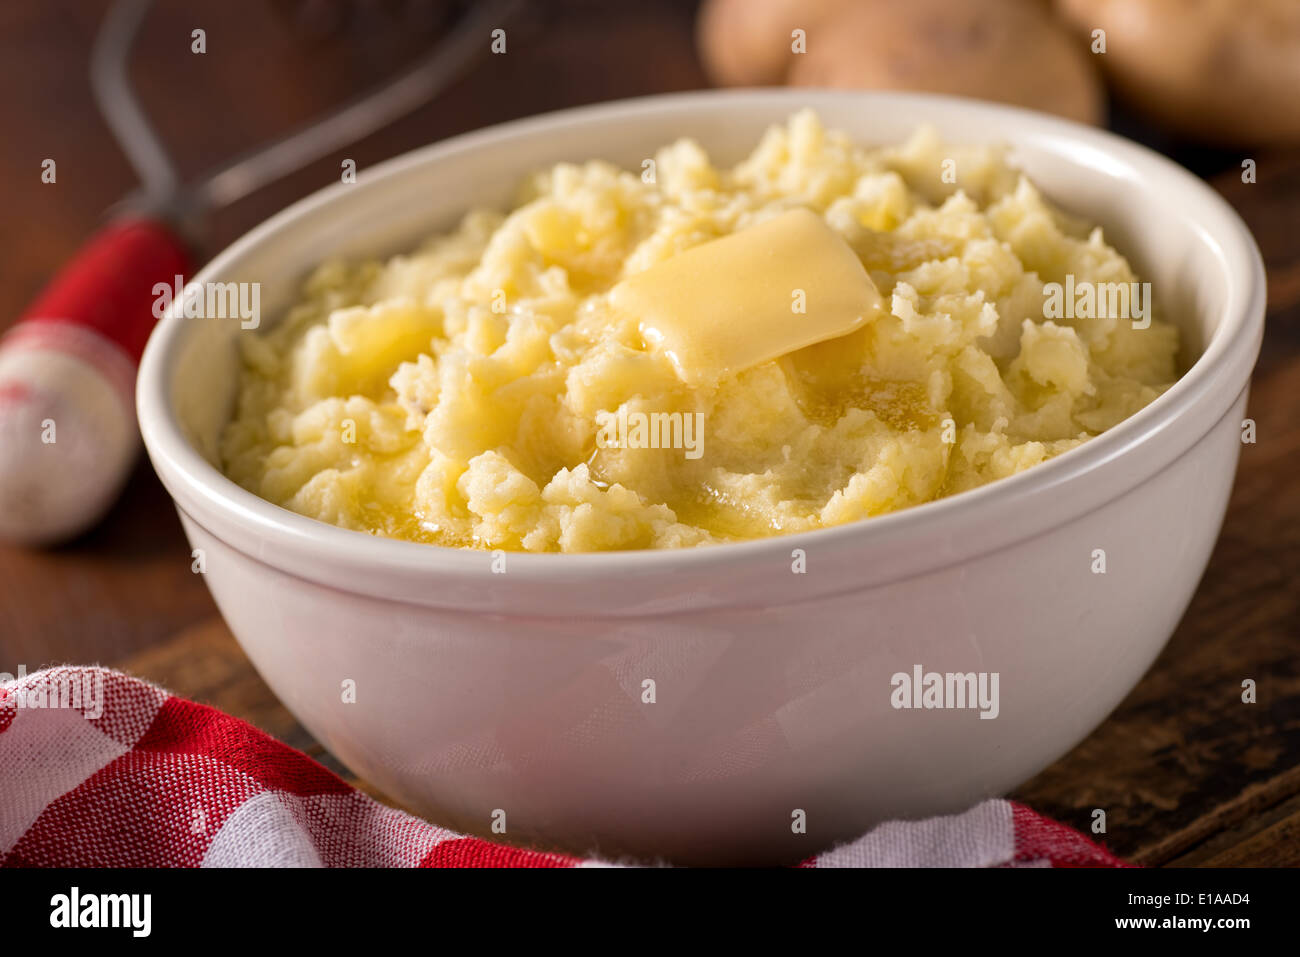 A bowl of creamy delicious mashed potatoes with melted butter. - Stock Image